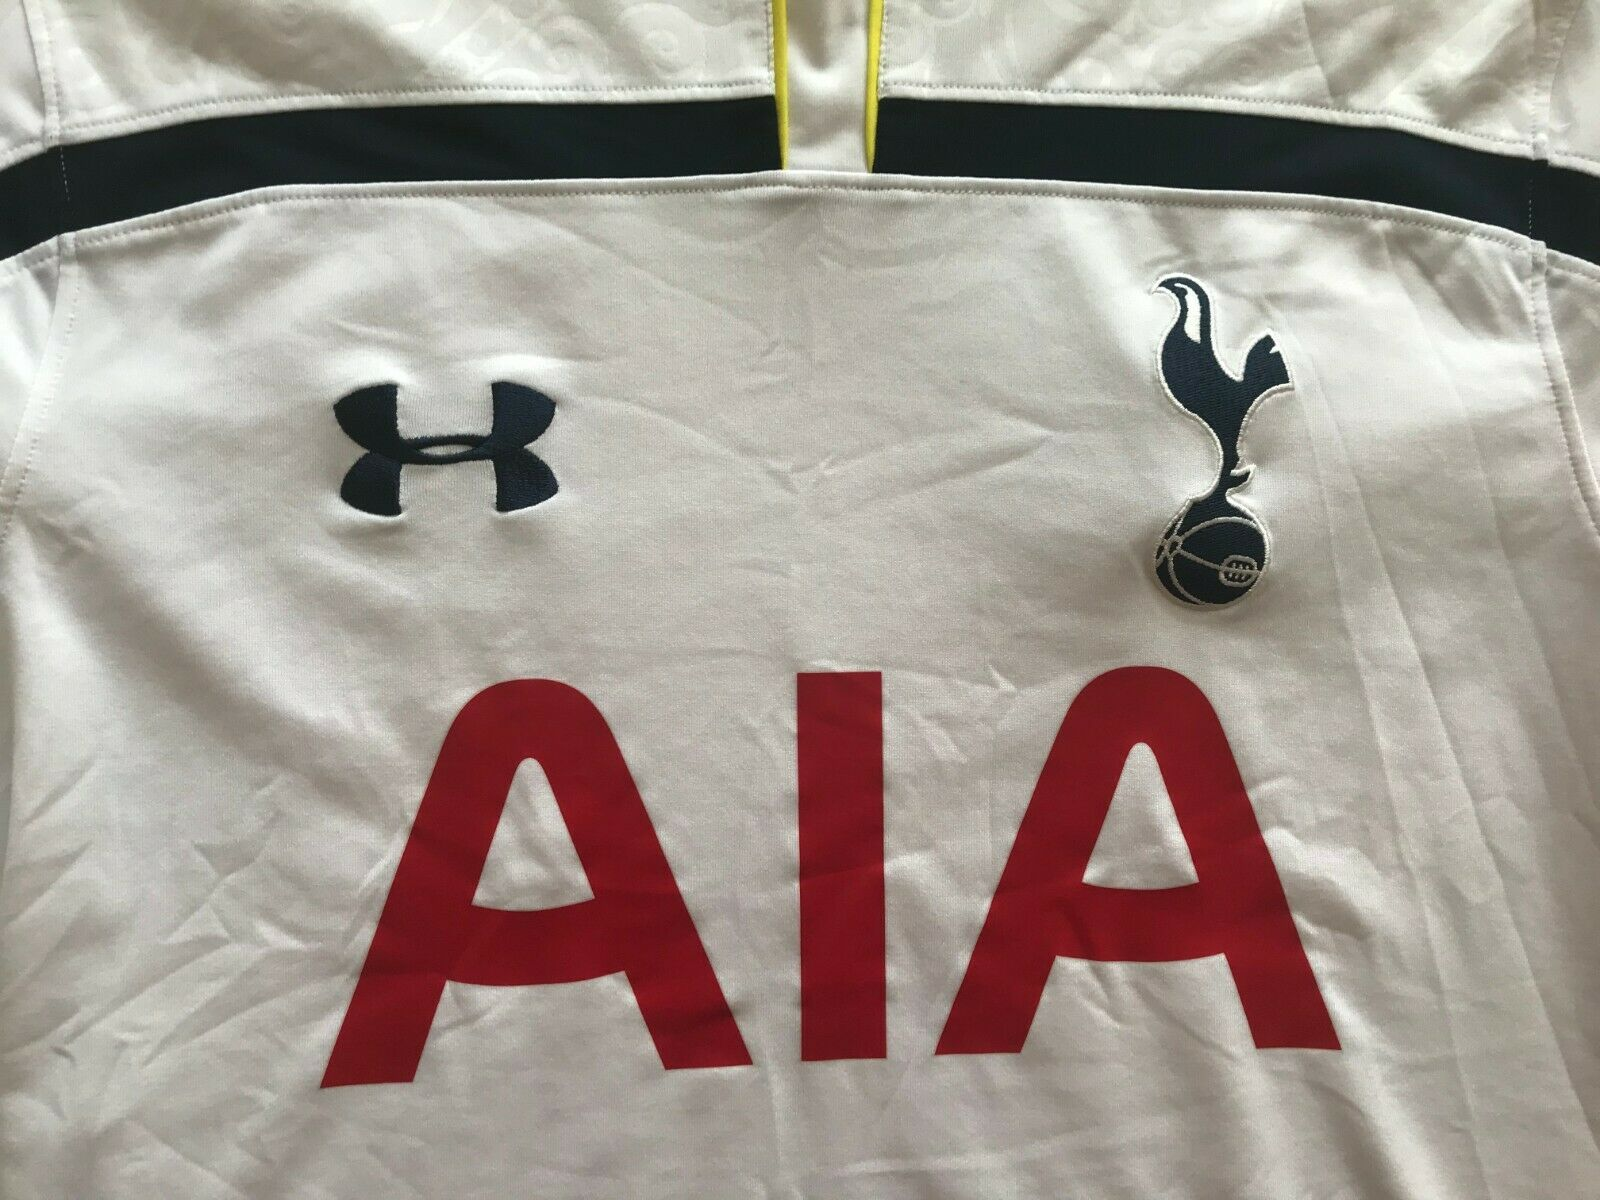 Tottenham Hotspur 2014/2015 Home Size M Under Armour jersey